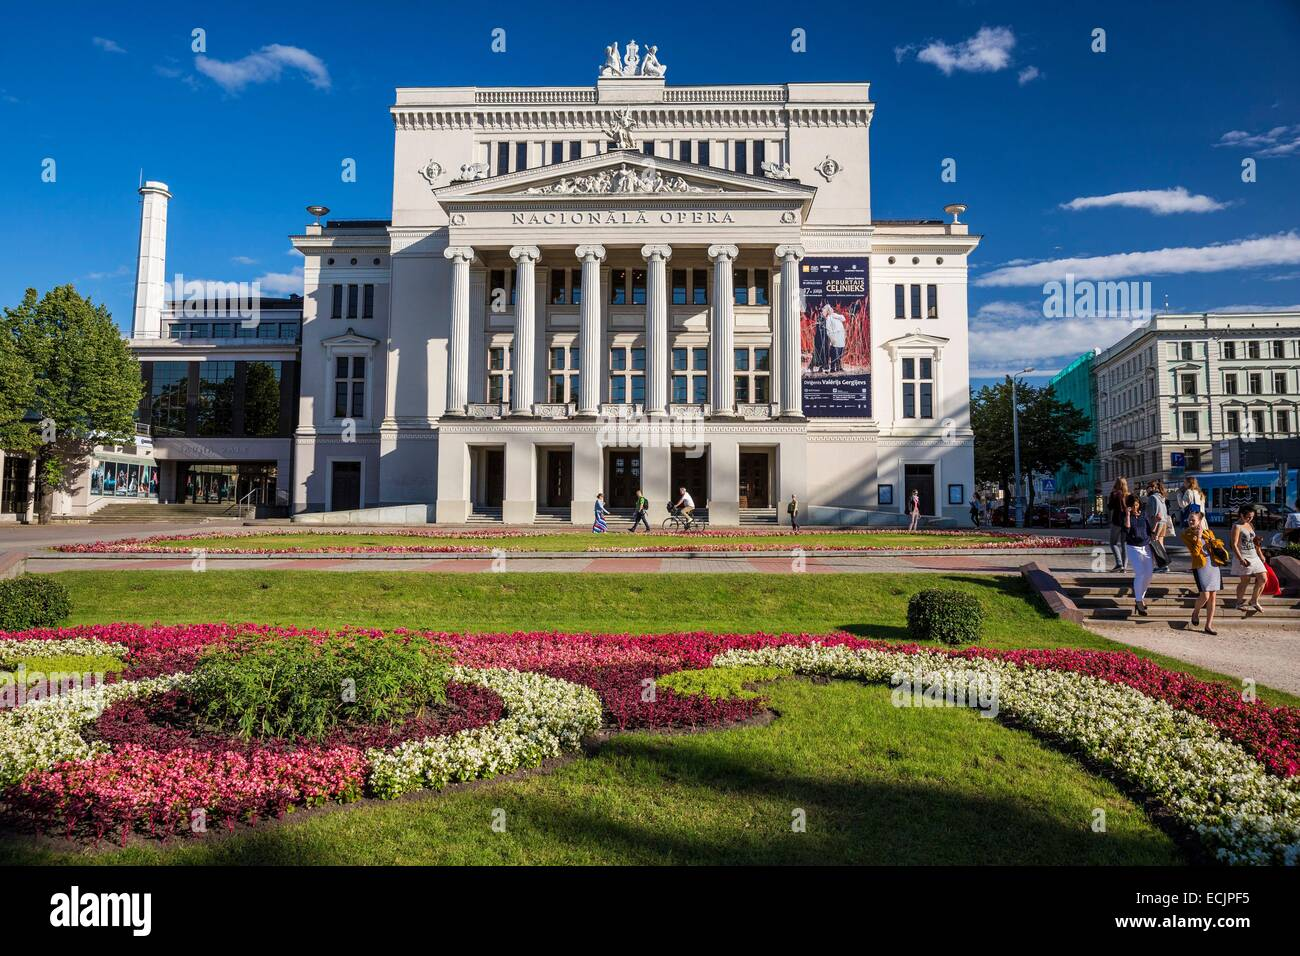 Latvia (Baltic States), Riga, European capital of culture 2014, National Opera House - Stock Image